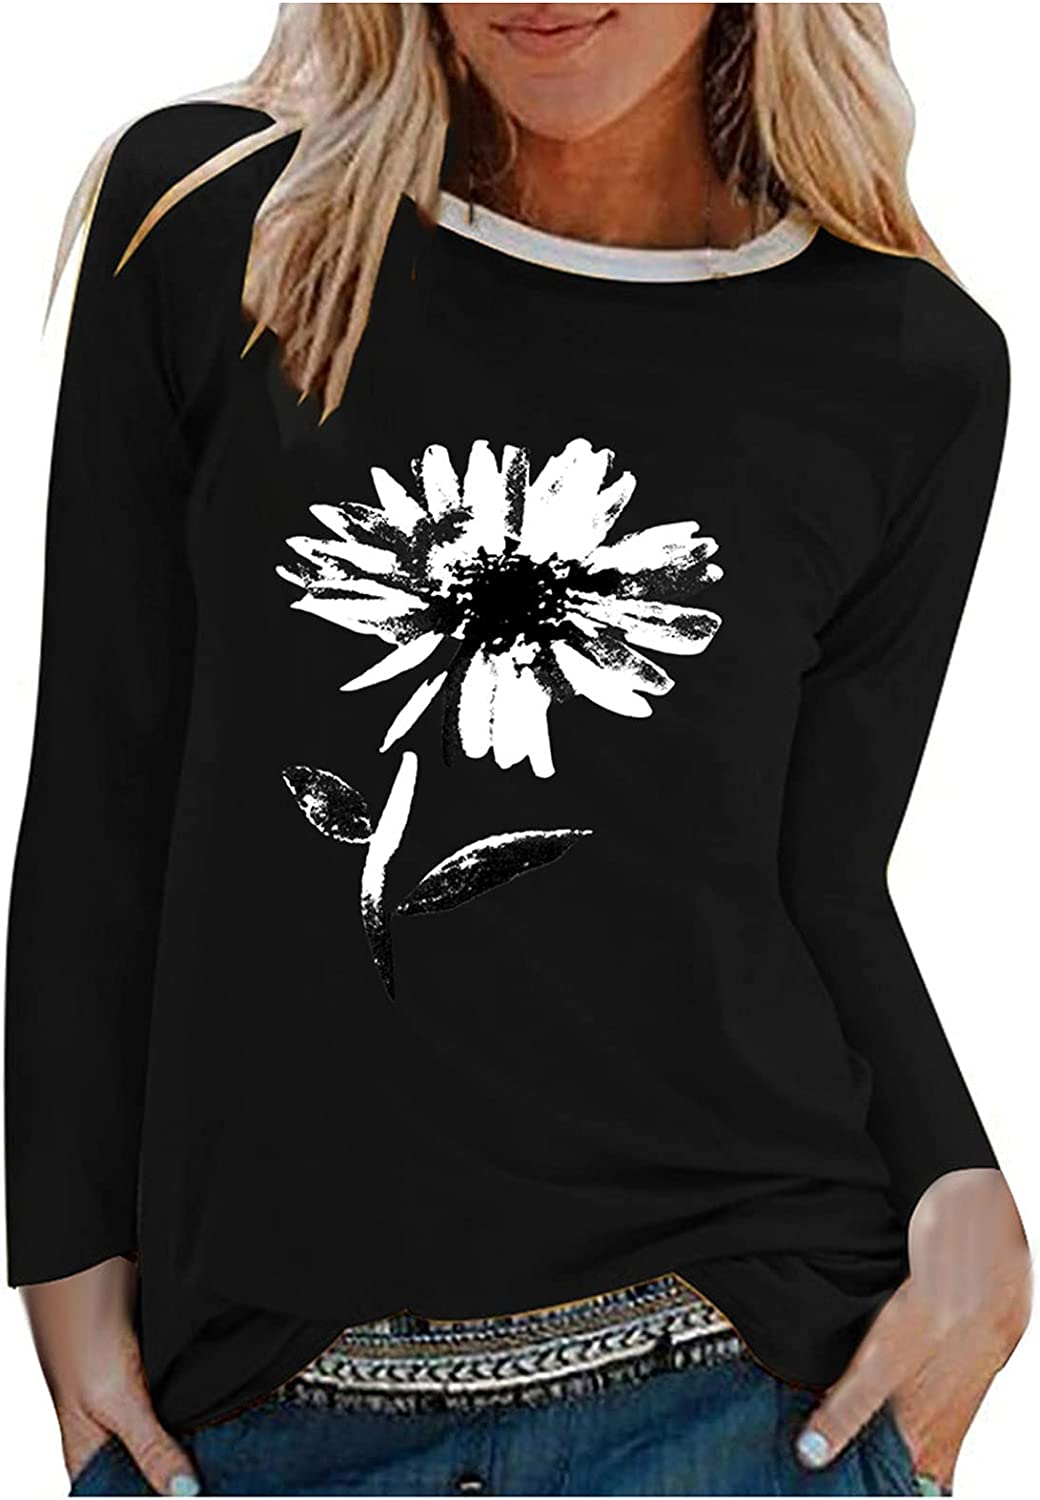 Women's Casual Floral Print T-Shirt Round Neck Long Sleeve Loose Stitching Tops Sweatshirt